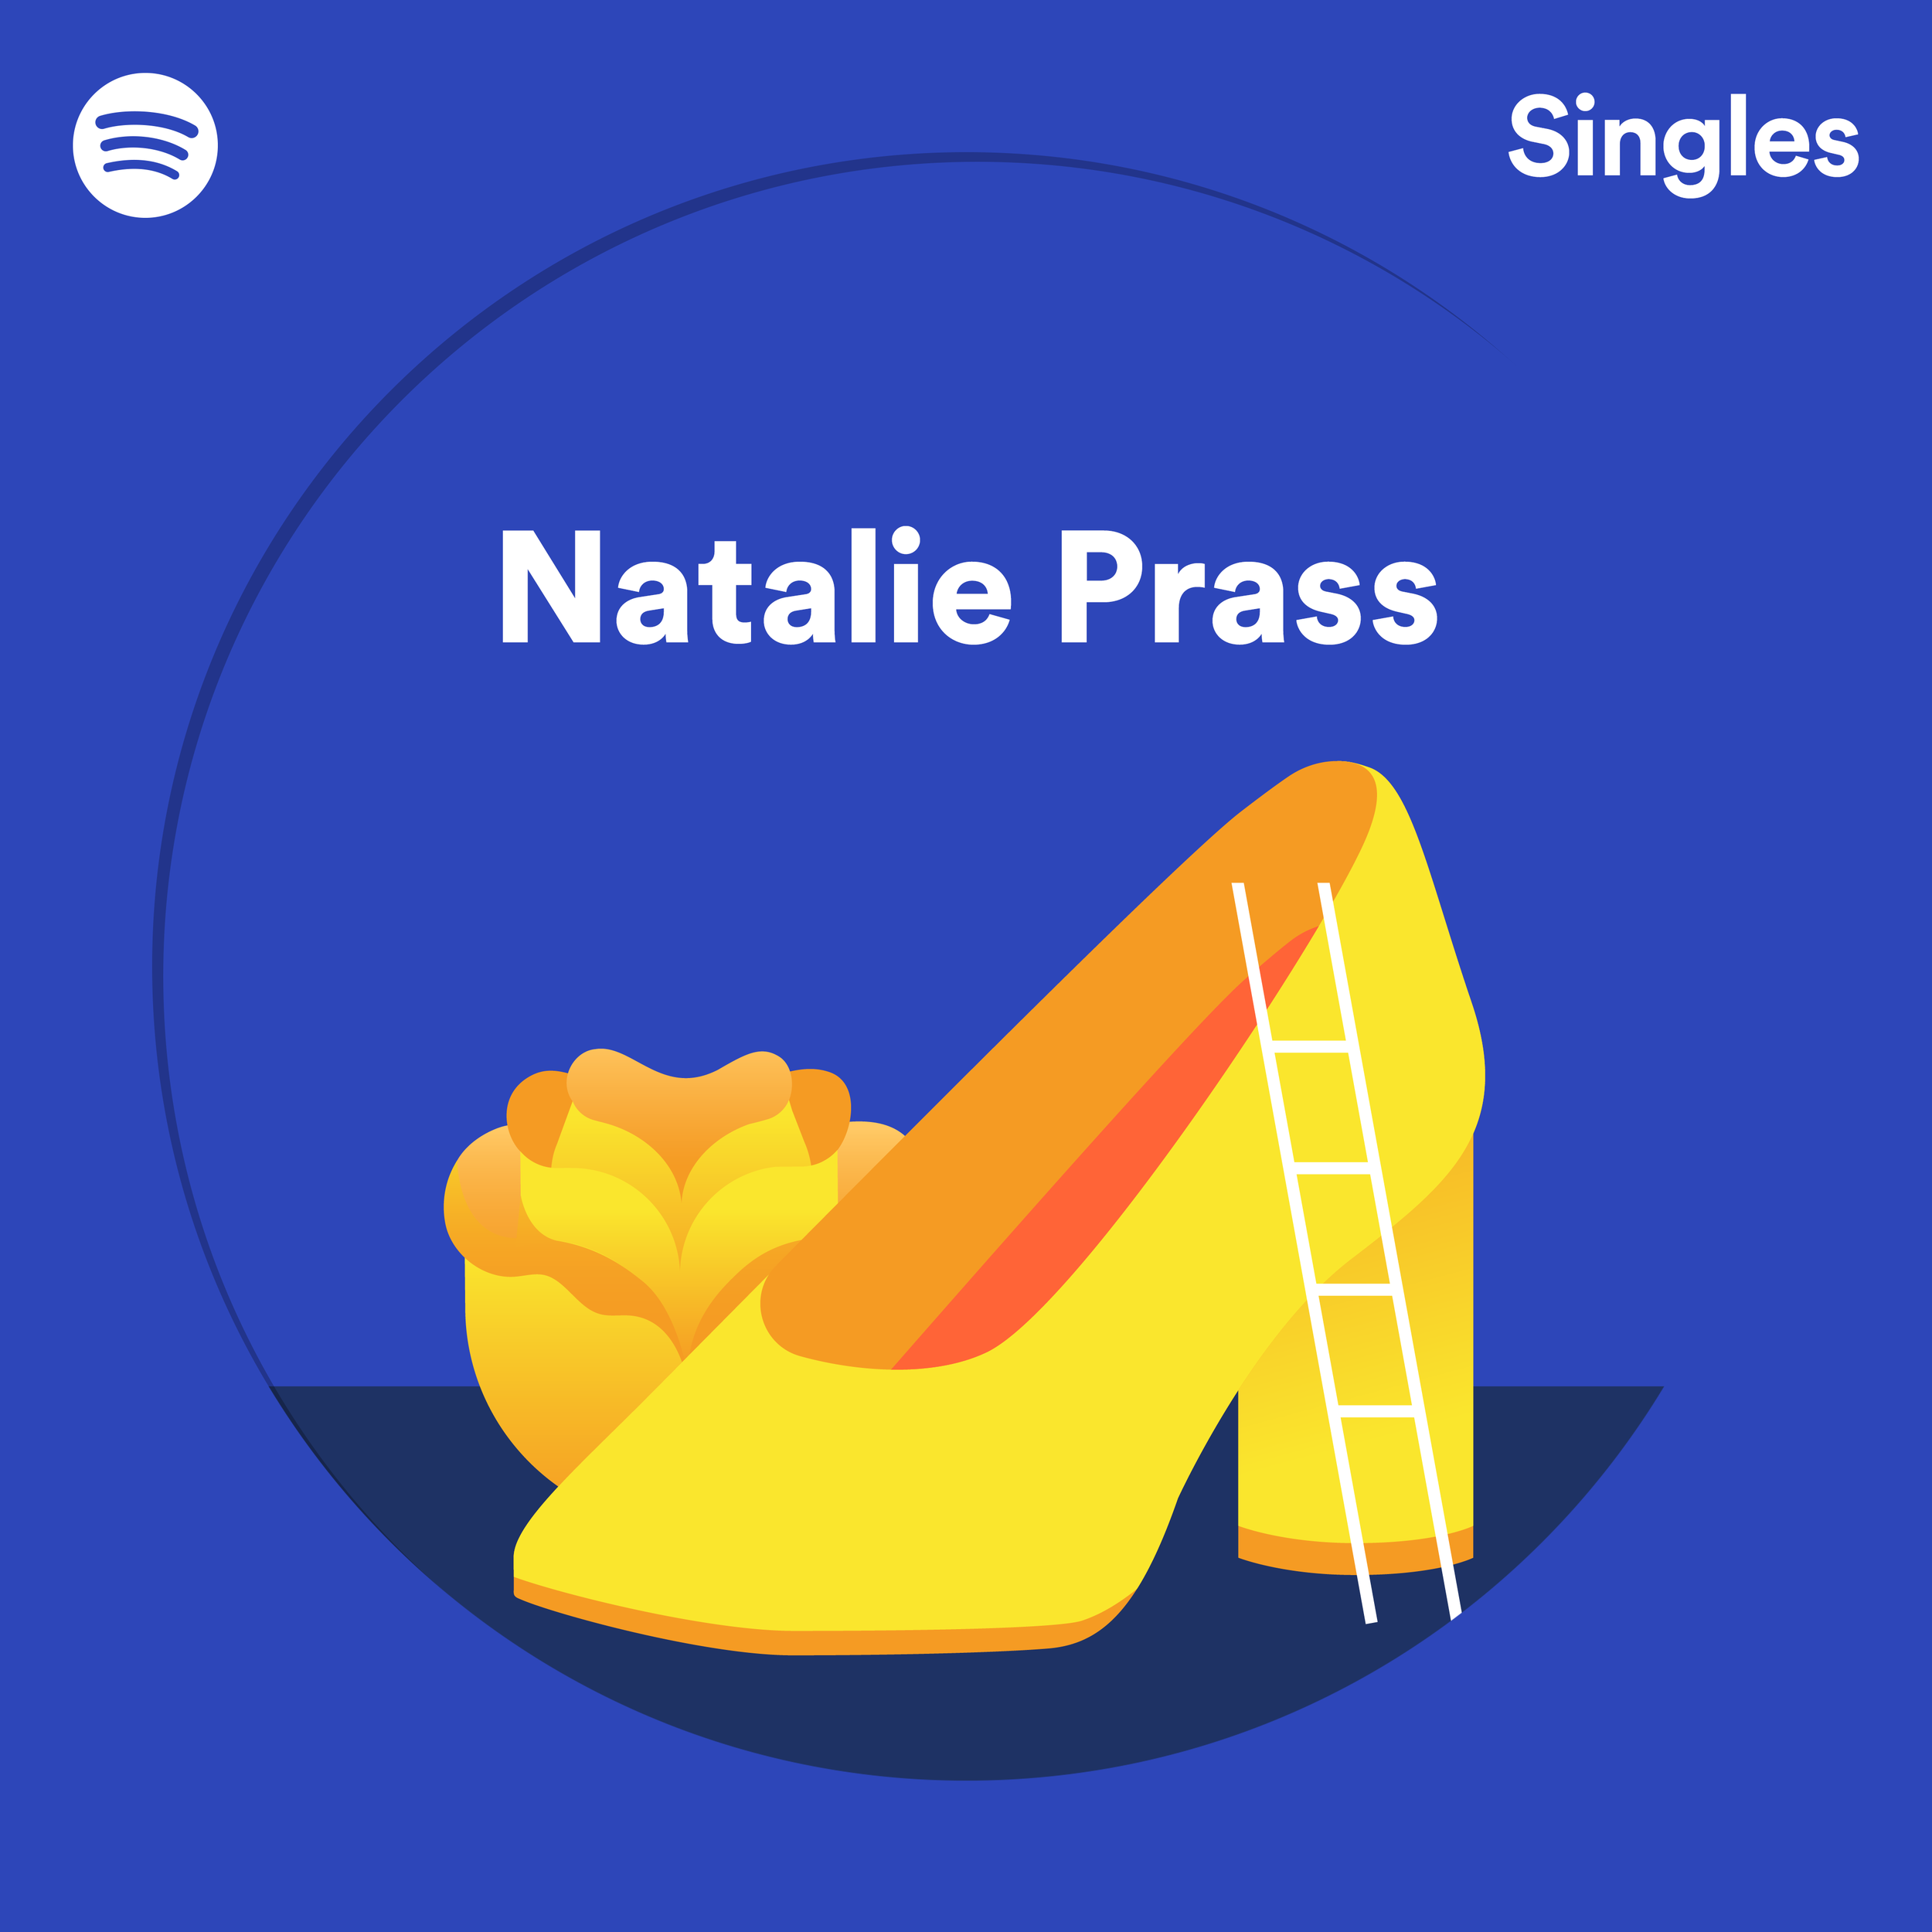 Singles_Cover_Natalie-Prass.png